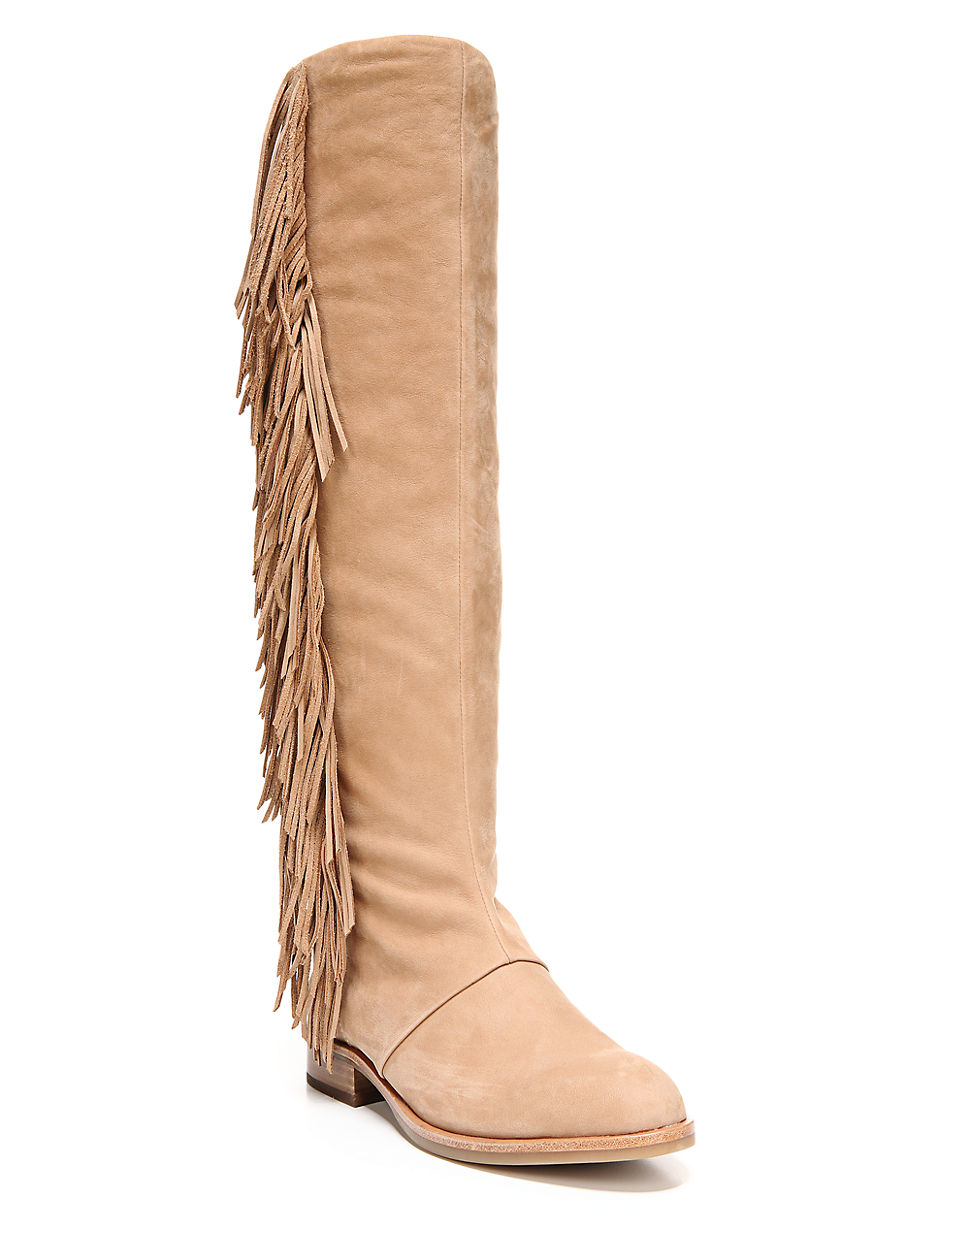 Sam edelman Josephine Fringe-trimmed Boots in Natural | Lyst